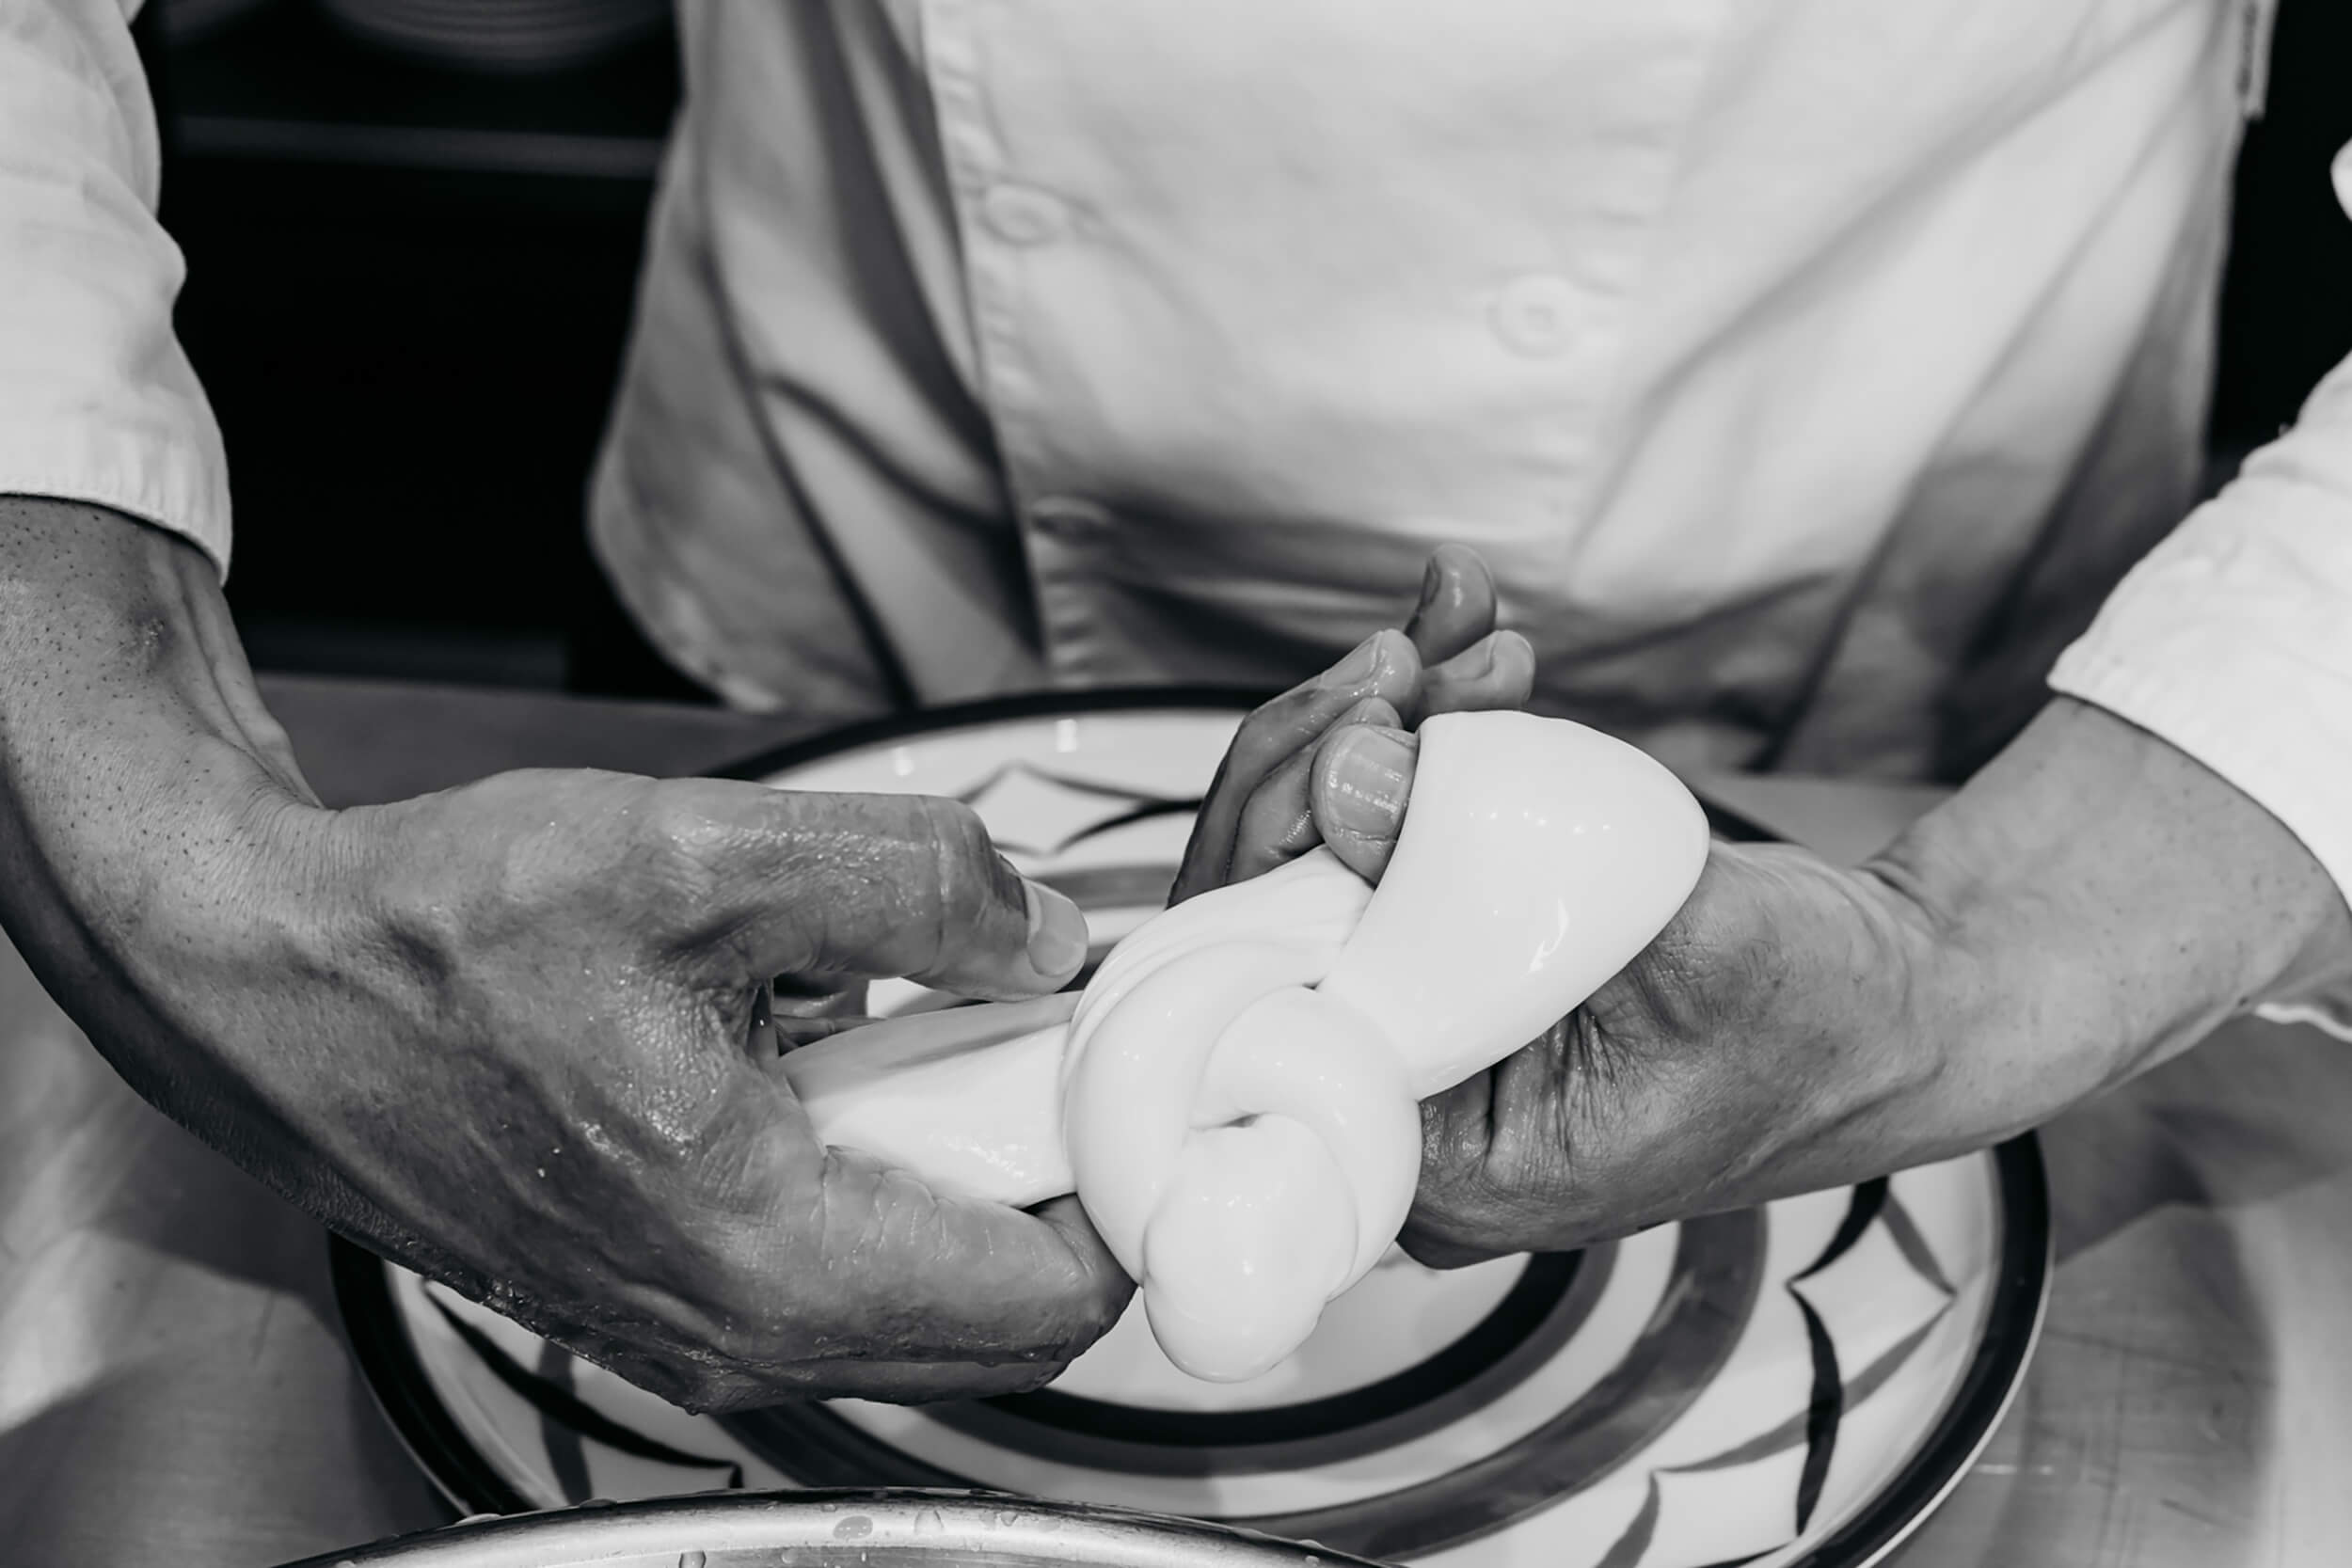 Hands showing process of mozzarella making. The image is black and white.